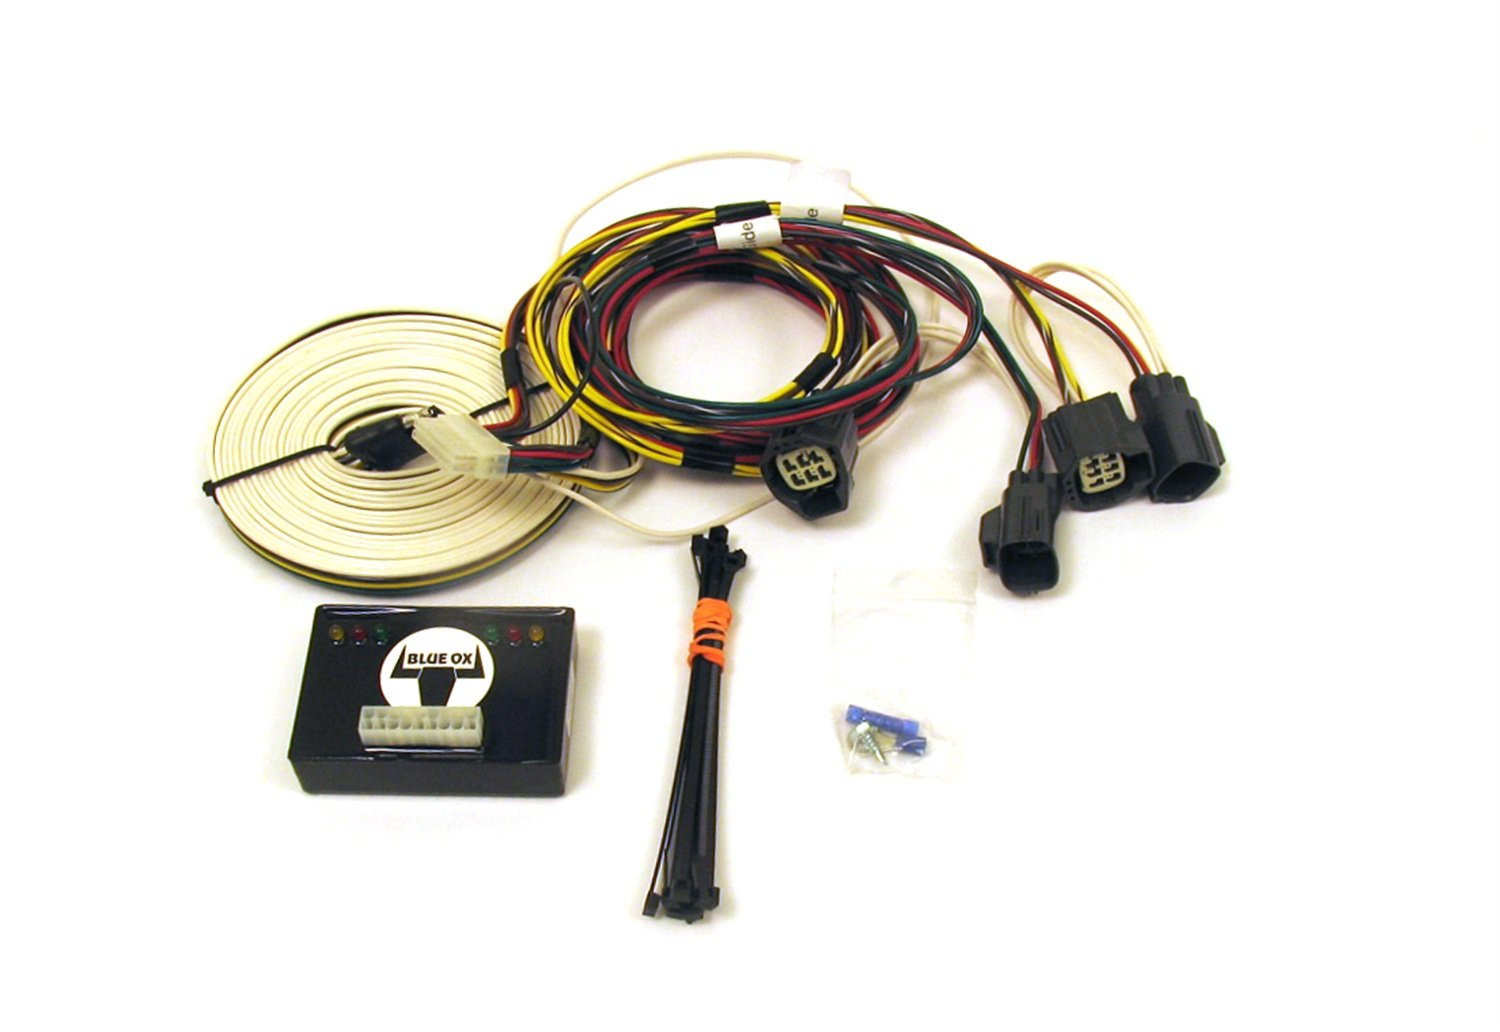 Blue Ox BX88339 EZ Light Wiring Harness Kit EZ Light Wiring Harness Kit by Blue Ox